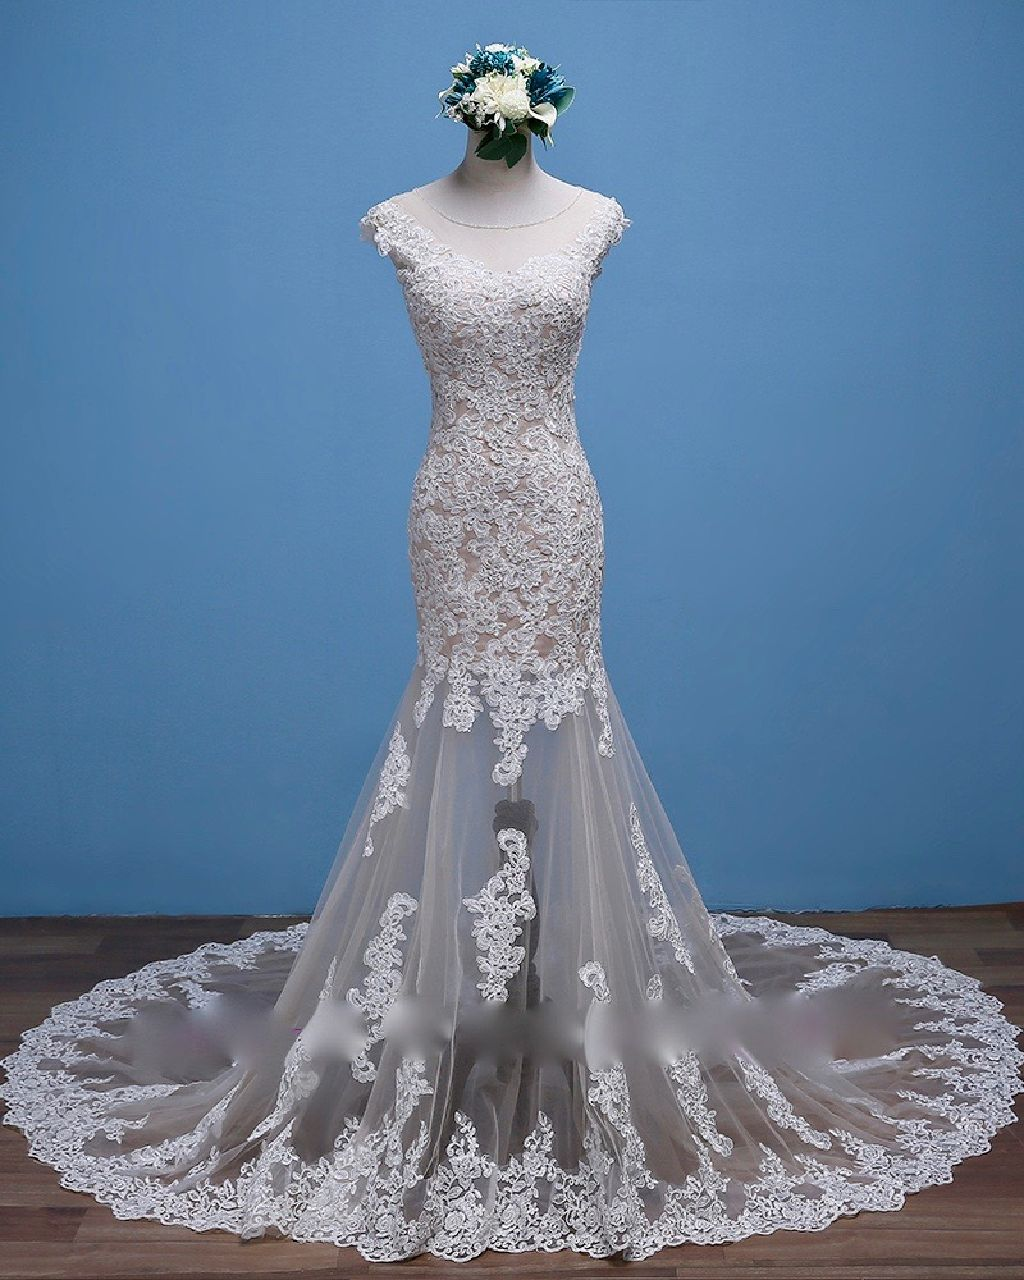 Naomi's Mermaid Lace Cap Sleeve Wedding Gown With detachable Skirt